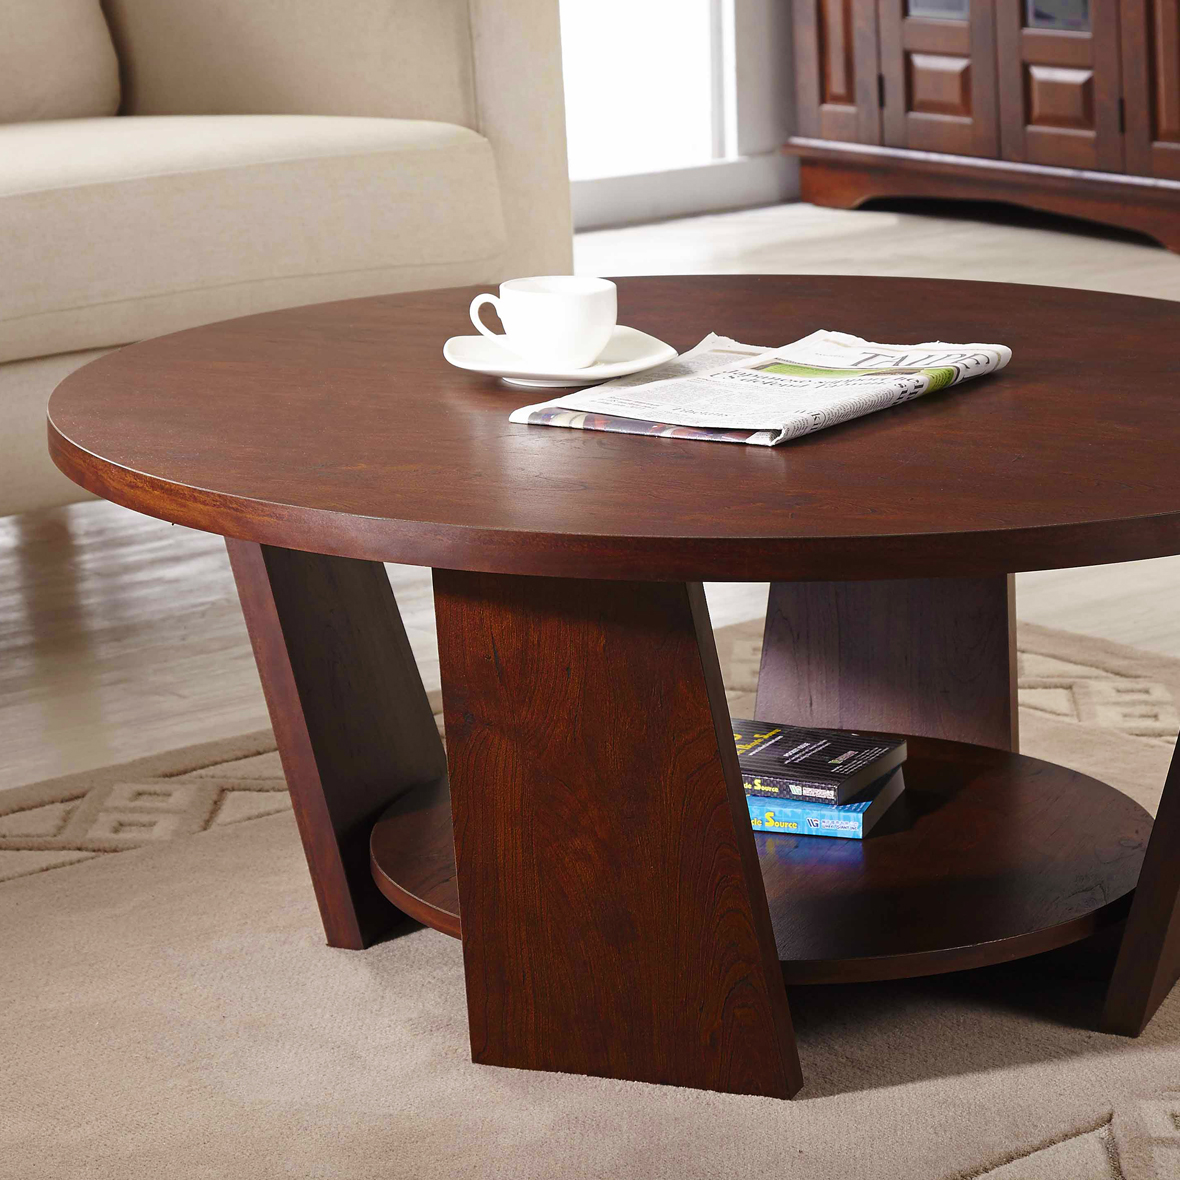 DIY Coffee Table · Flat Round Tabletop